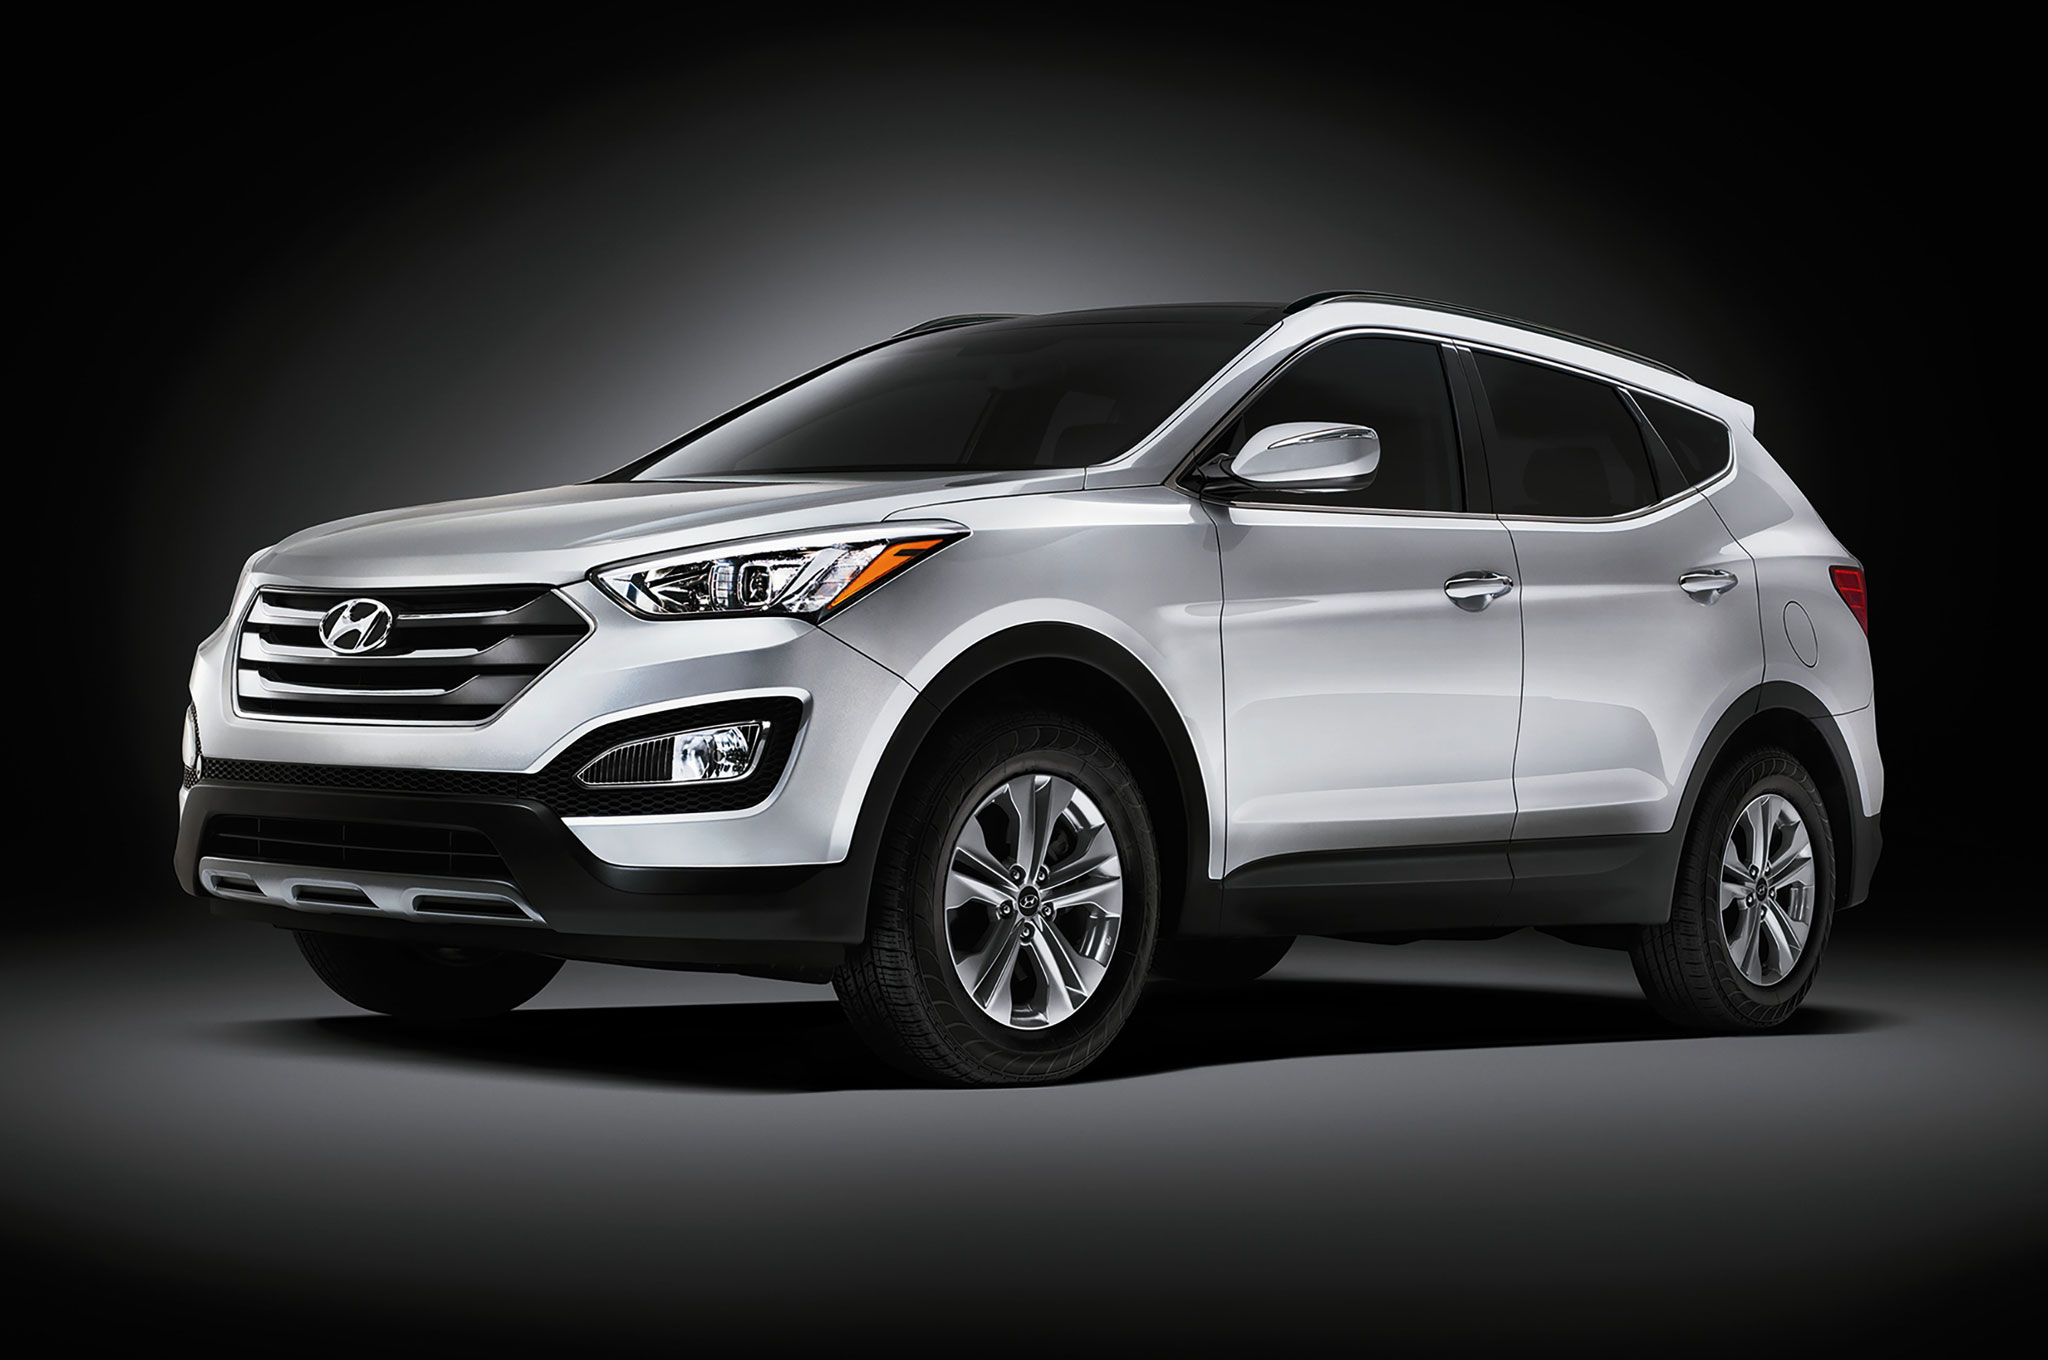 2015 hyundai santa fe santa fe sport updated. Black Bedroom Furniture Sets. Home Design Ideas